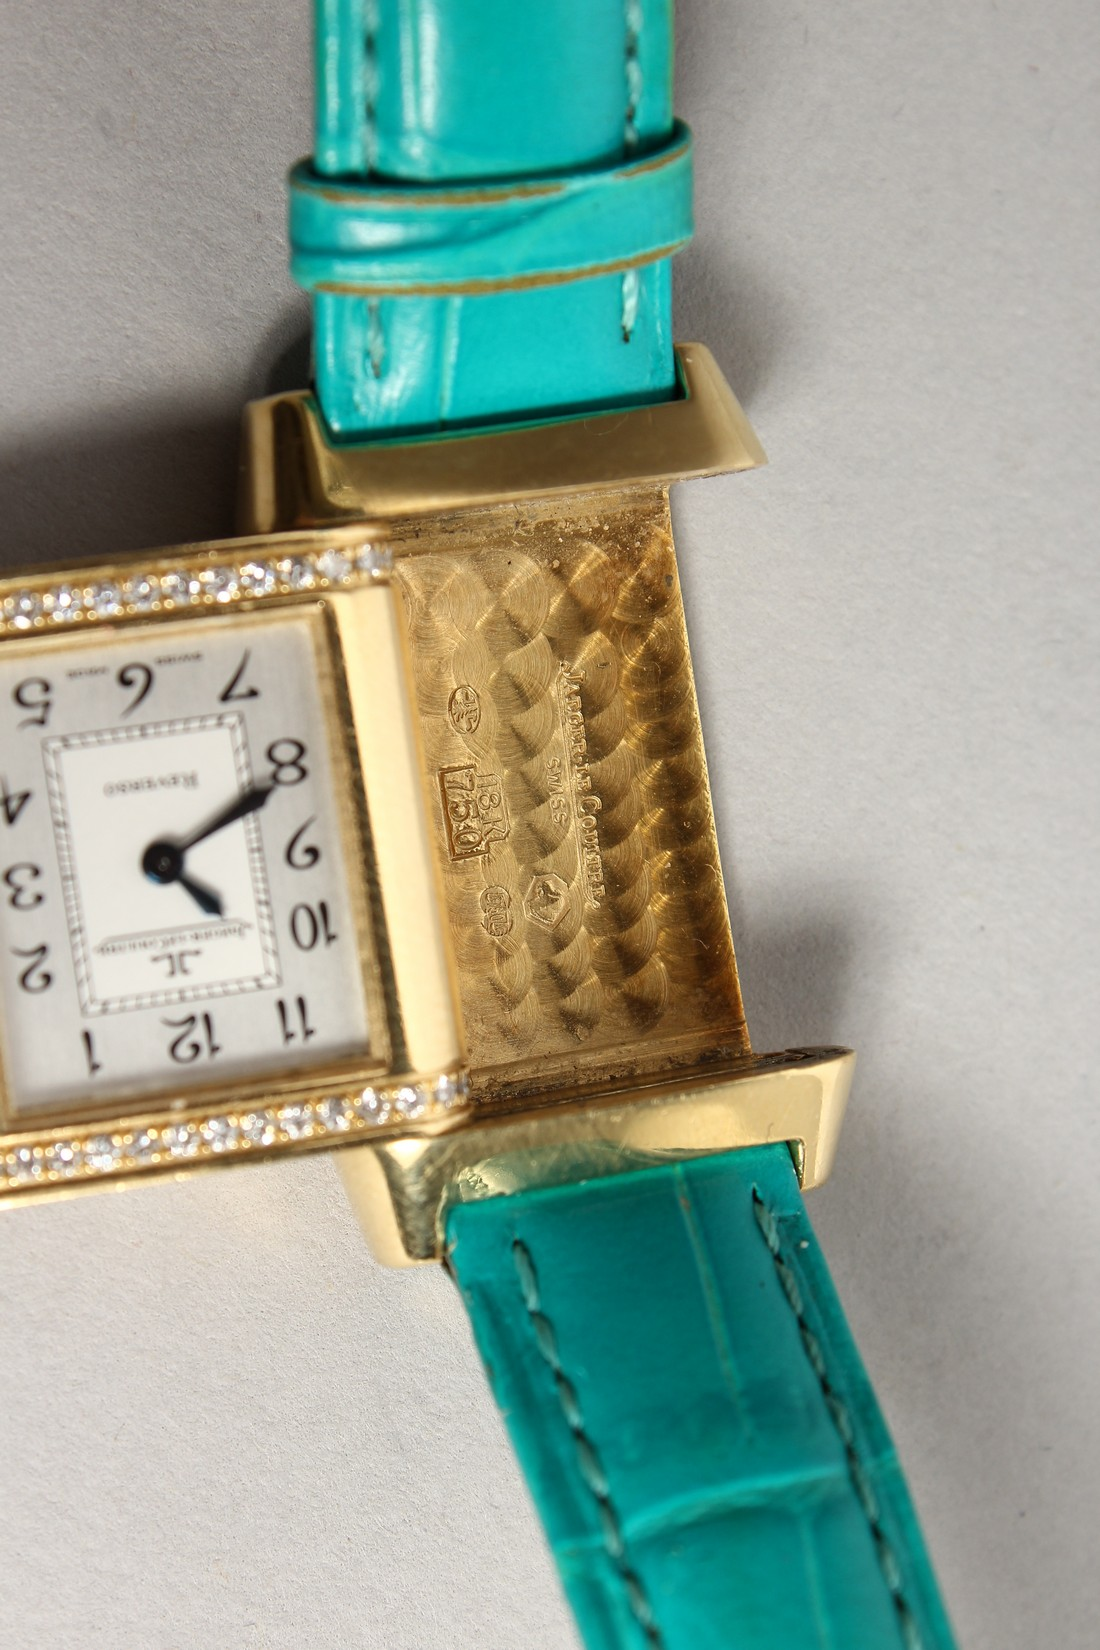 A VERY GOOD 18CT. GOLD AND DIAMOND JAGEUR LE COUTRE REVERSE WRISTWATCH, with a leather strap. - Image 5 of 8